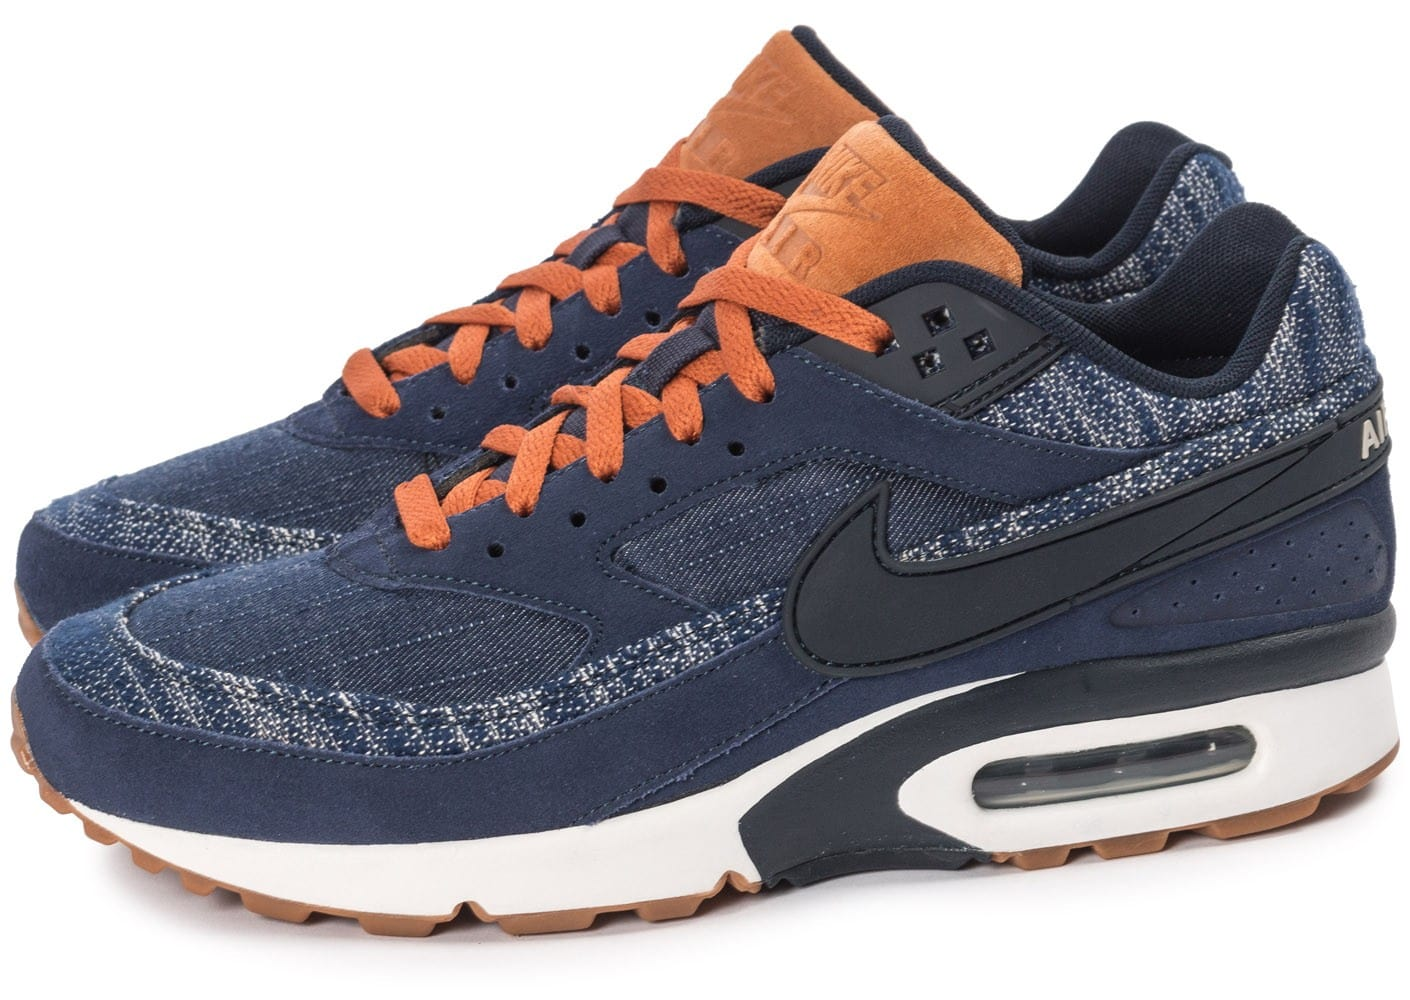 Nike Air Max BW Premium Denim Chaussures Baskets homme